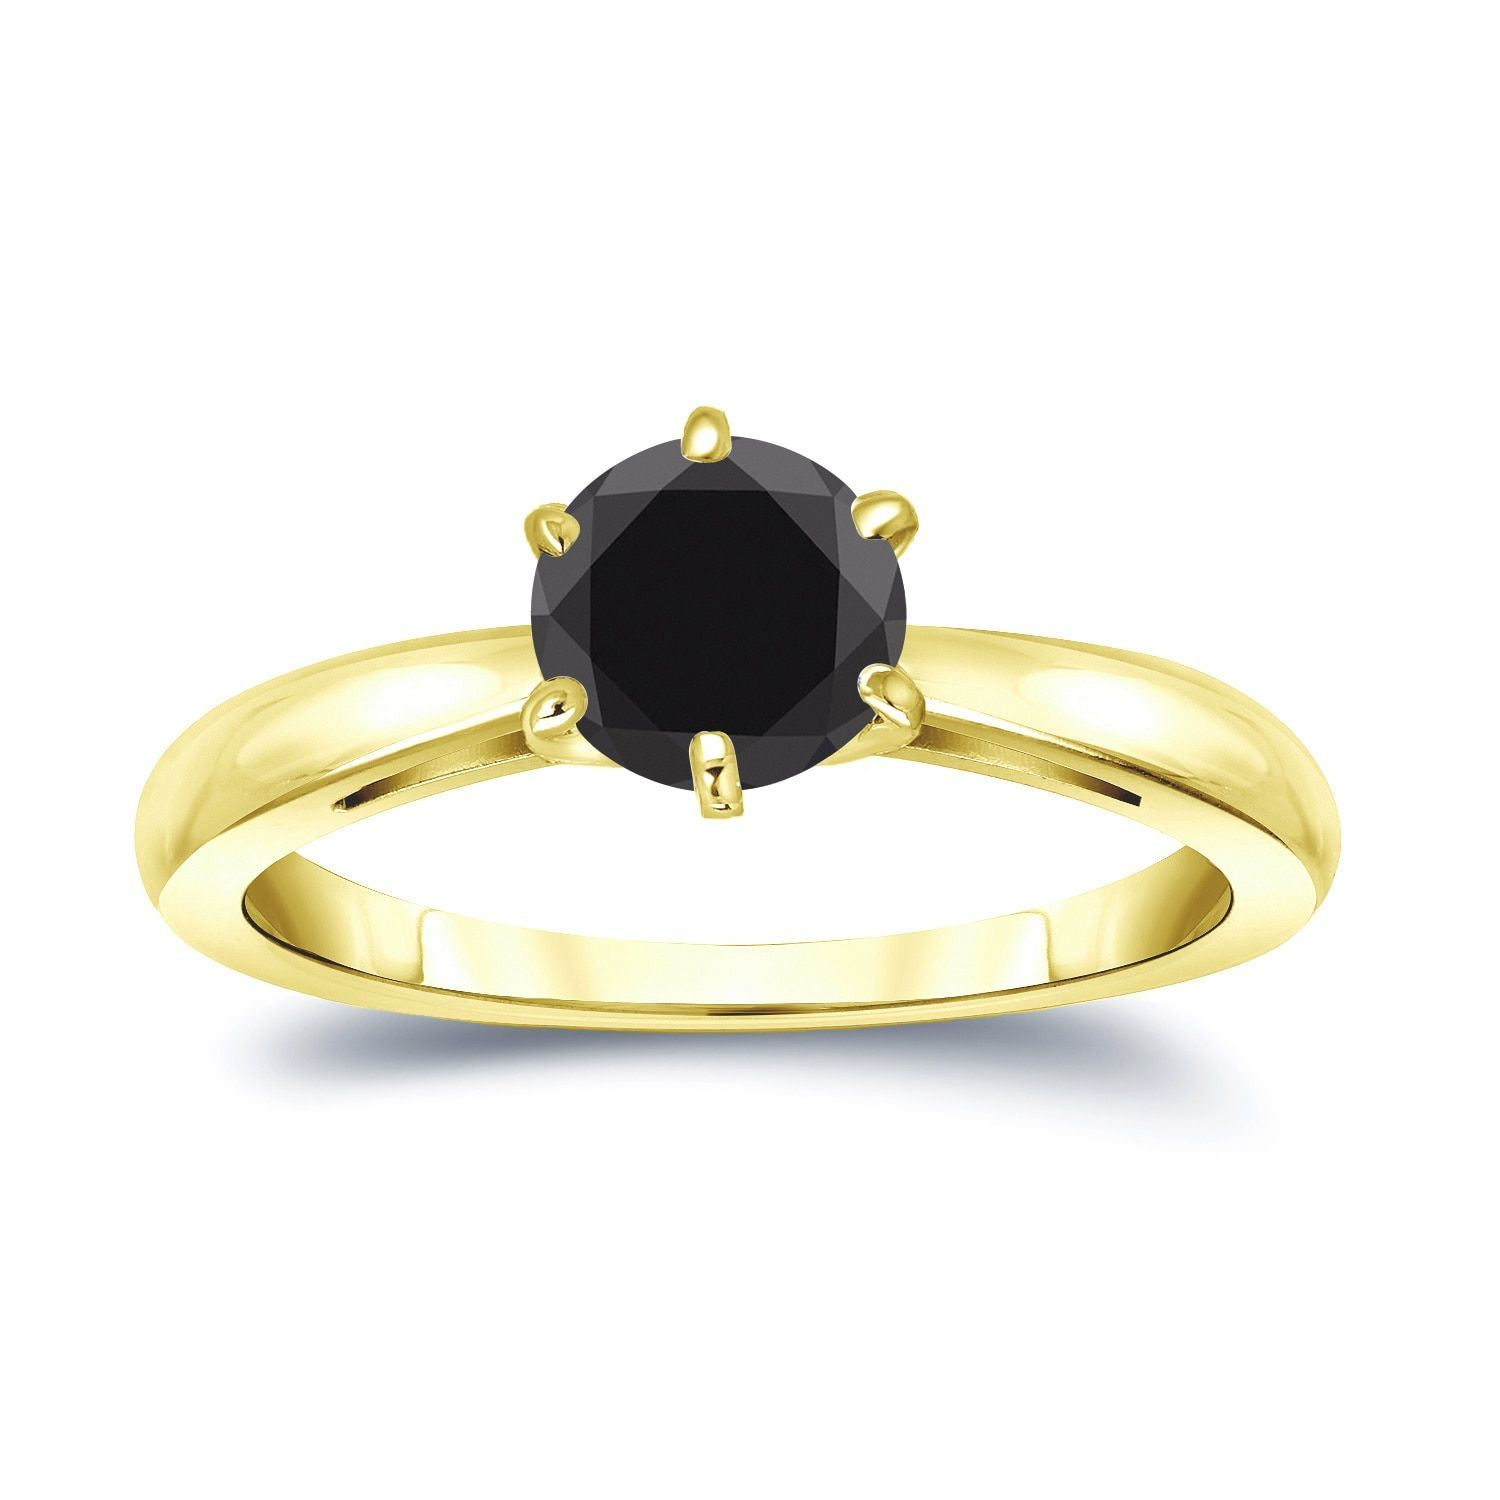 Auriya 14k Gold 1ct 6 Prong Round Cut Black Diamond Solitaire